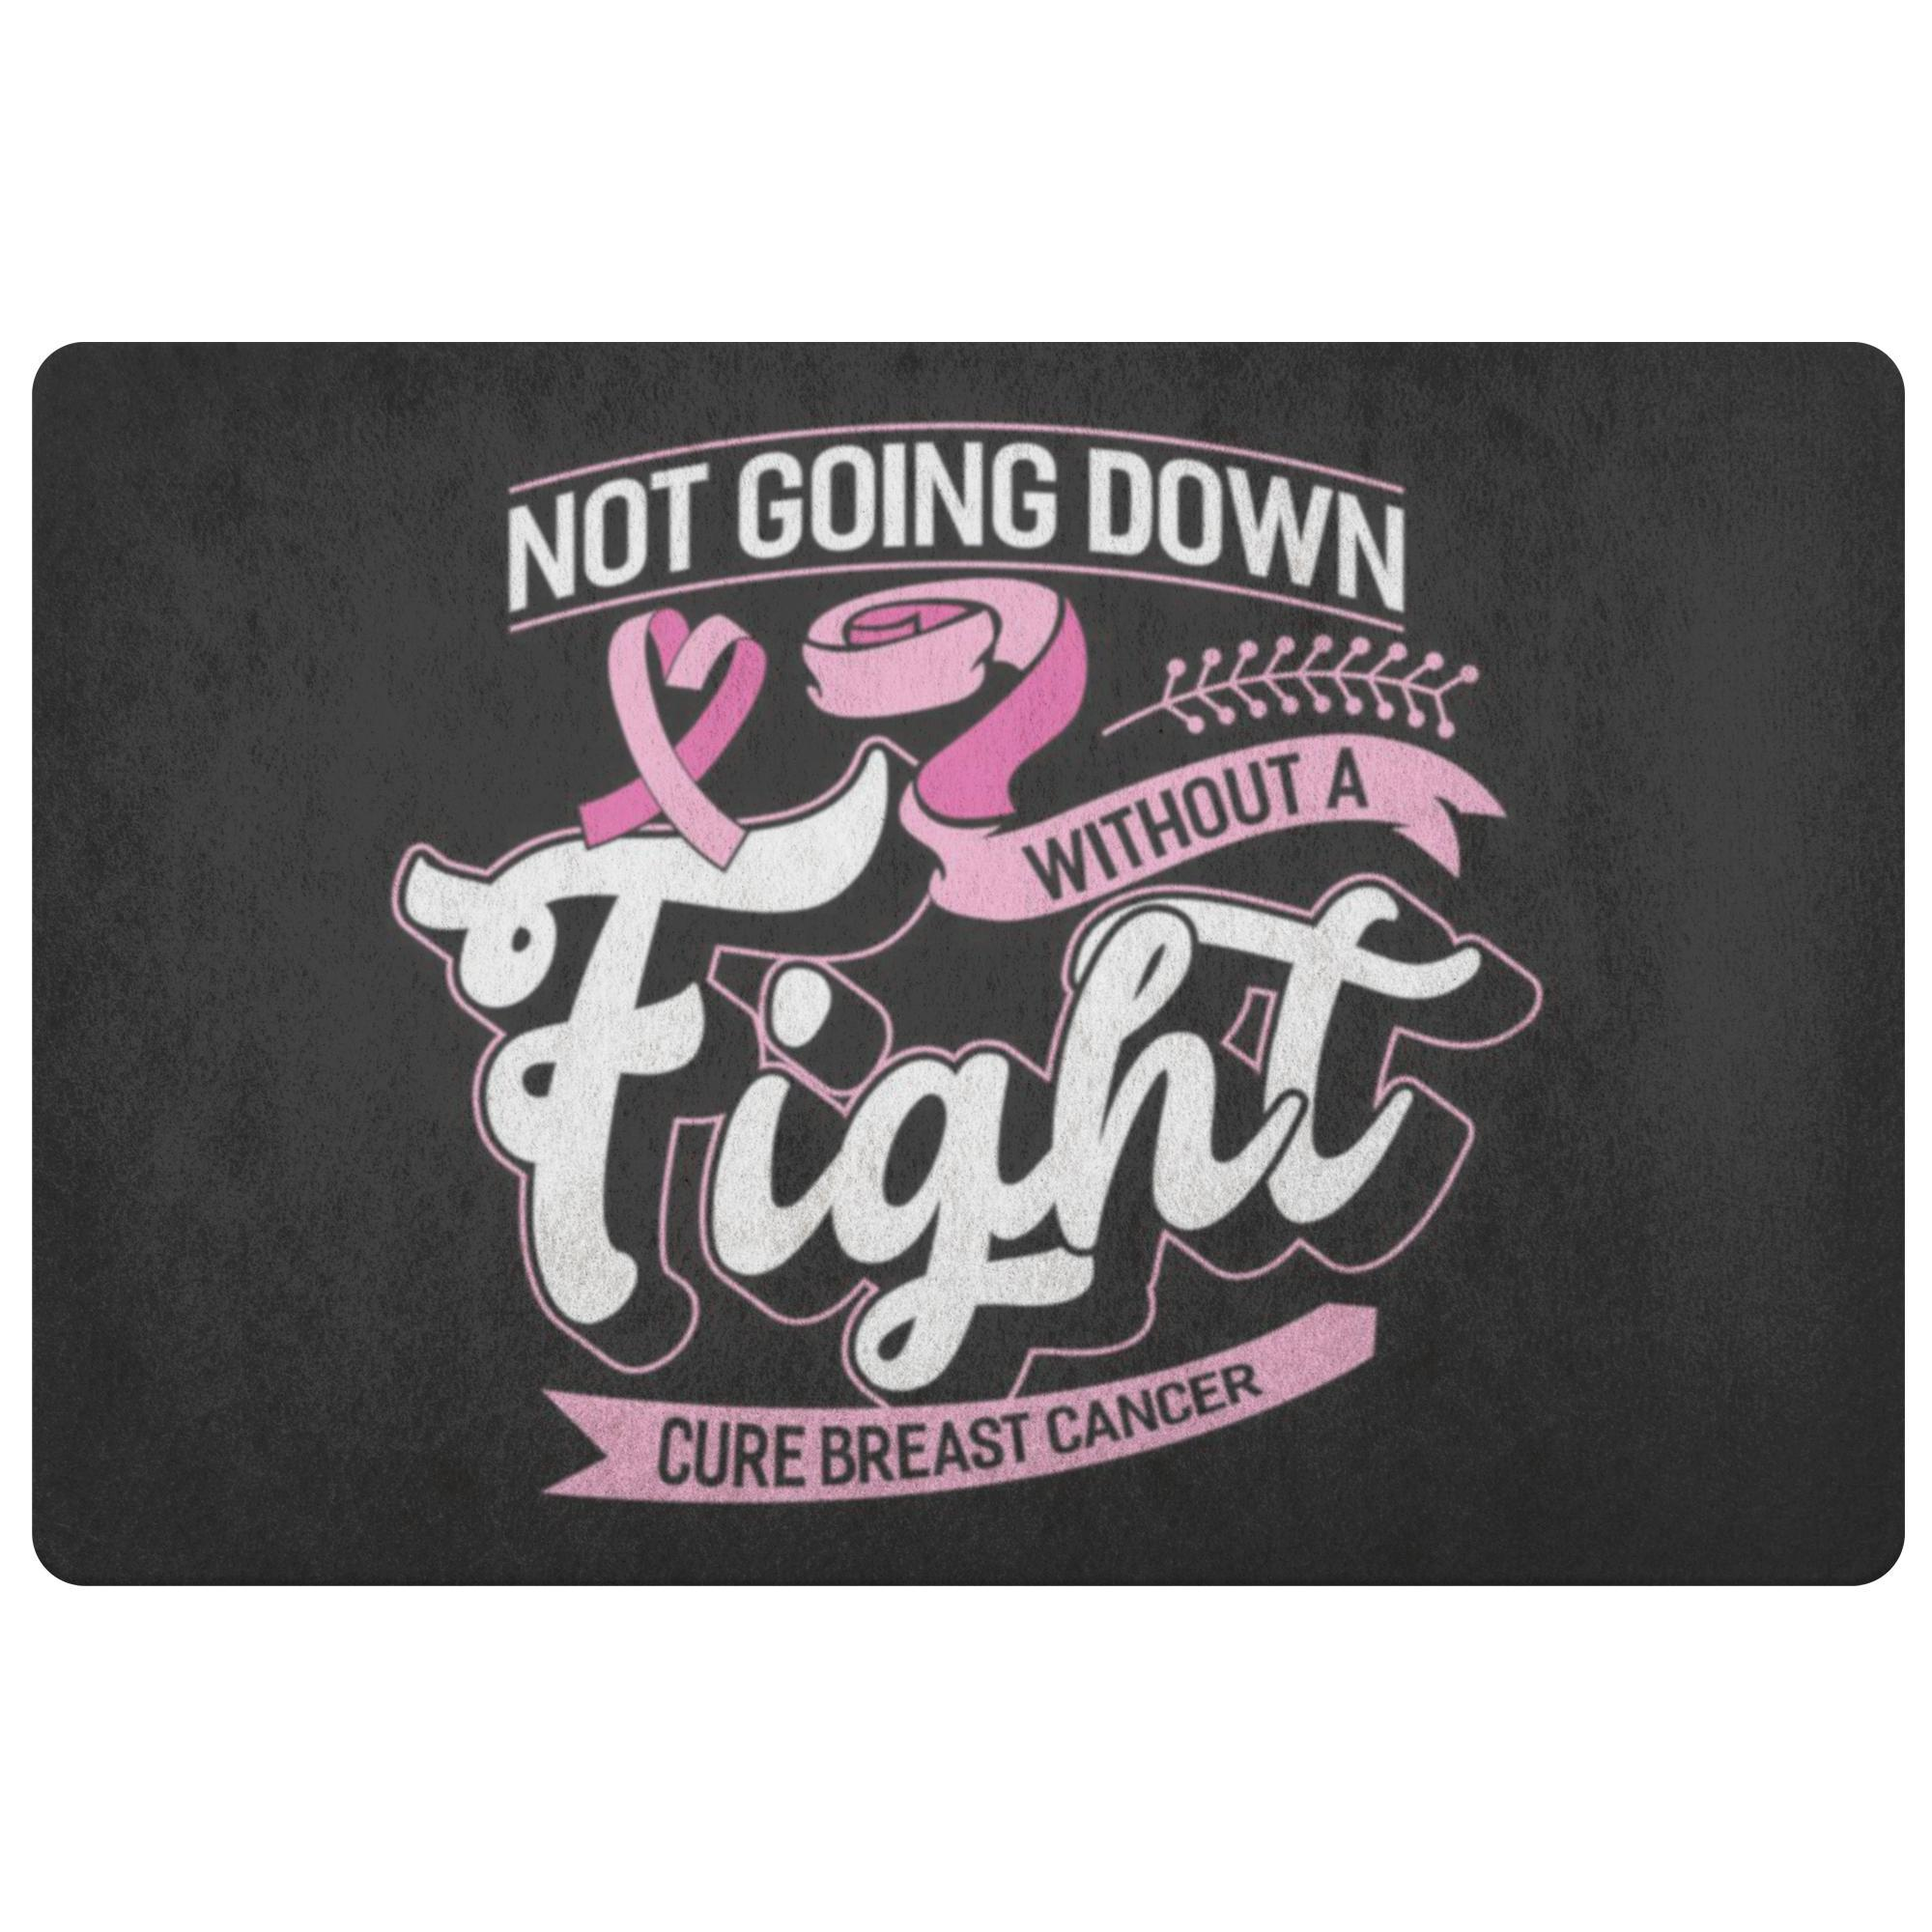 Not Going Down Without A Fight Cure Breast Cancer 18X26 Thin Indoor Door Mat Rug-Doormat-Black-JoyHip.Com